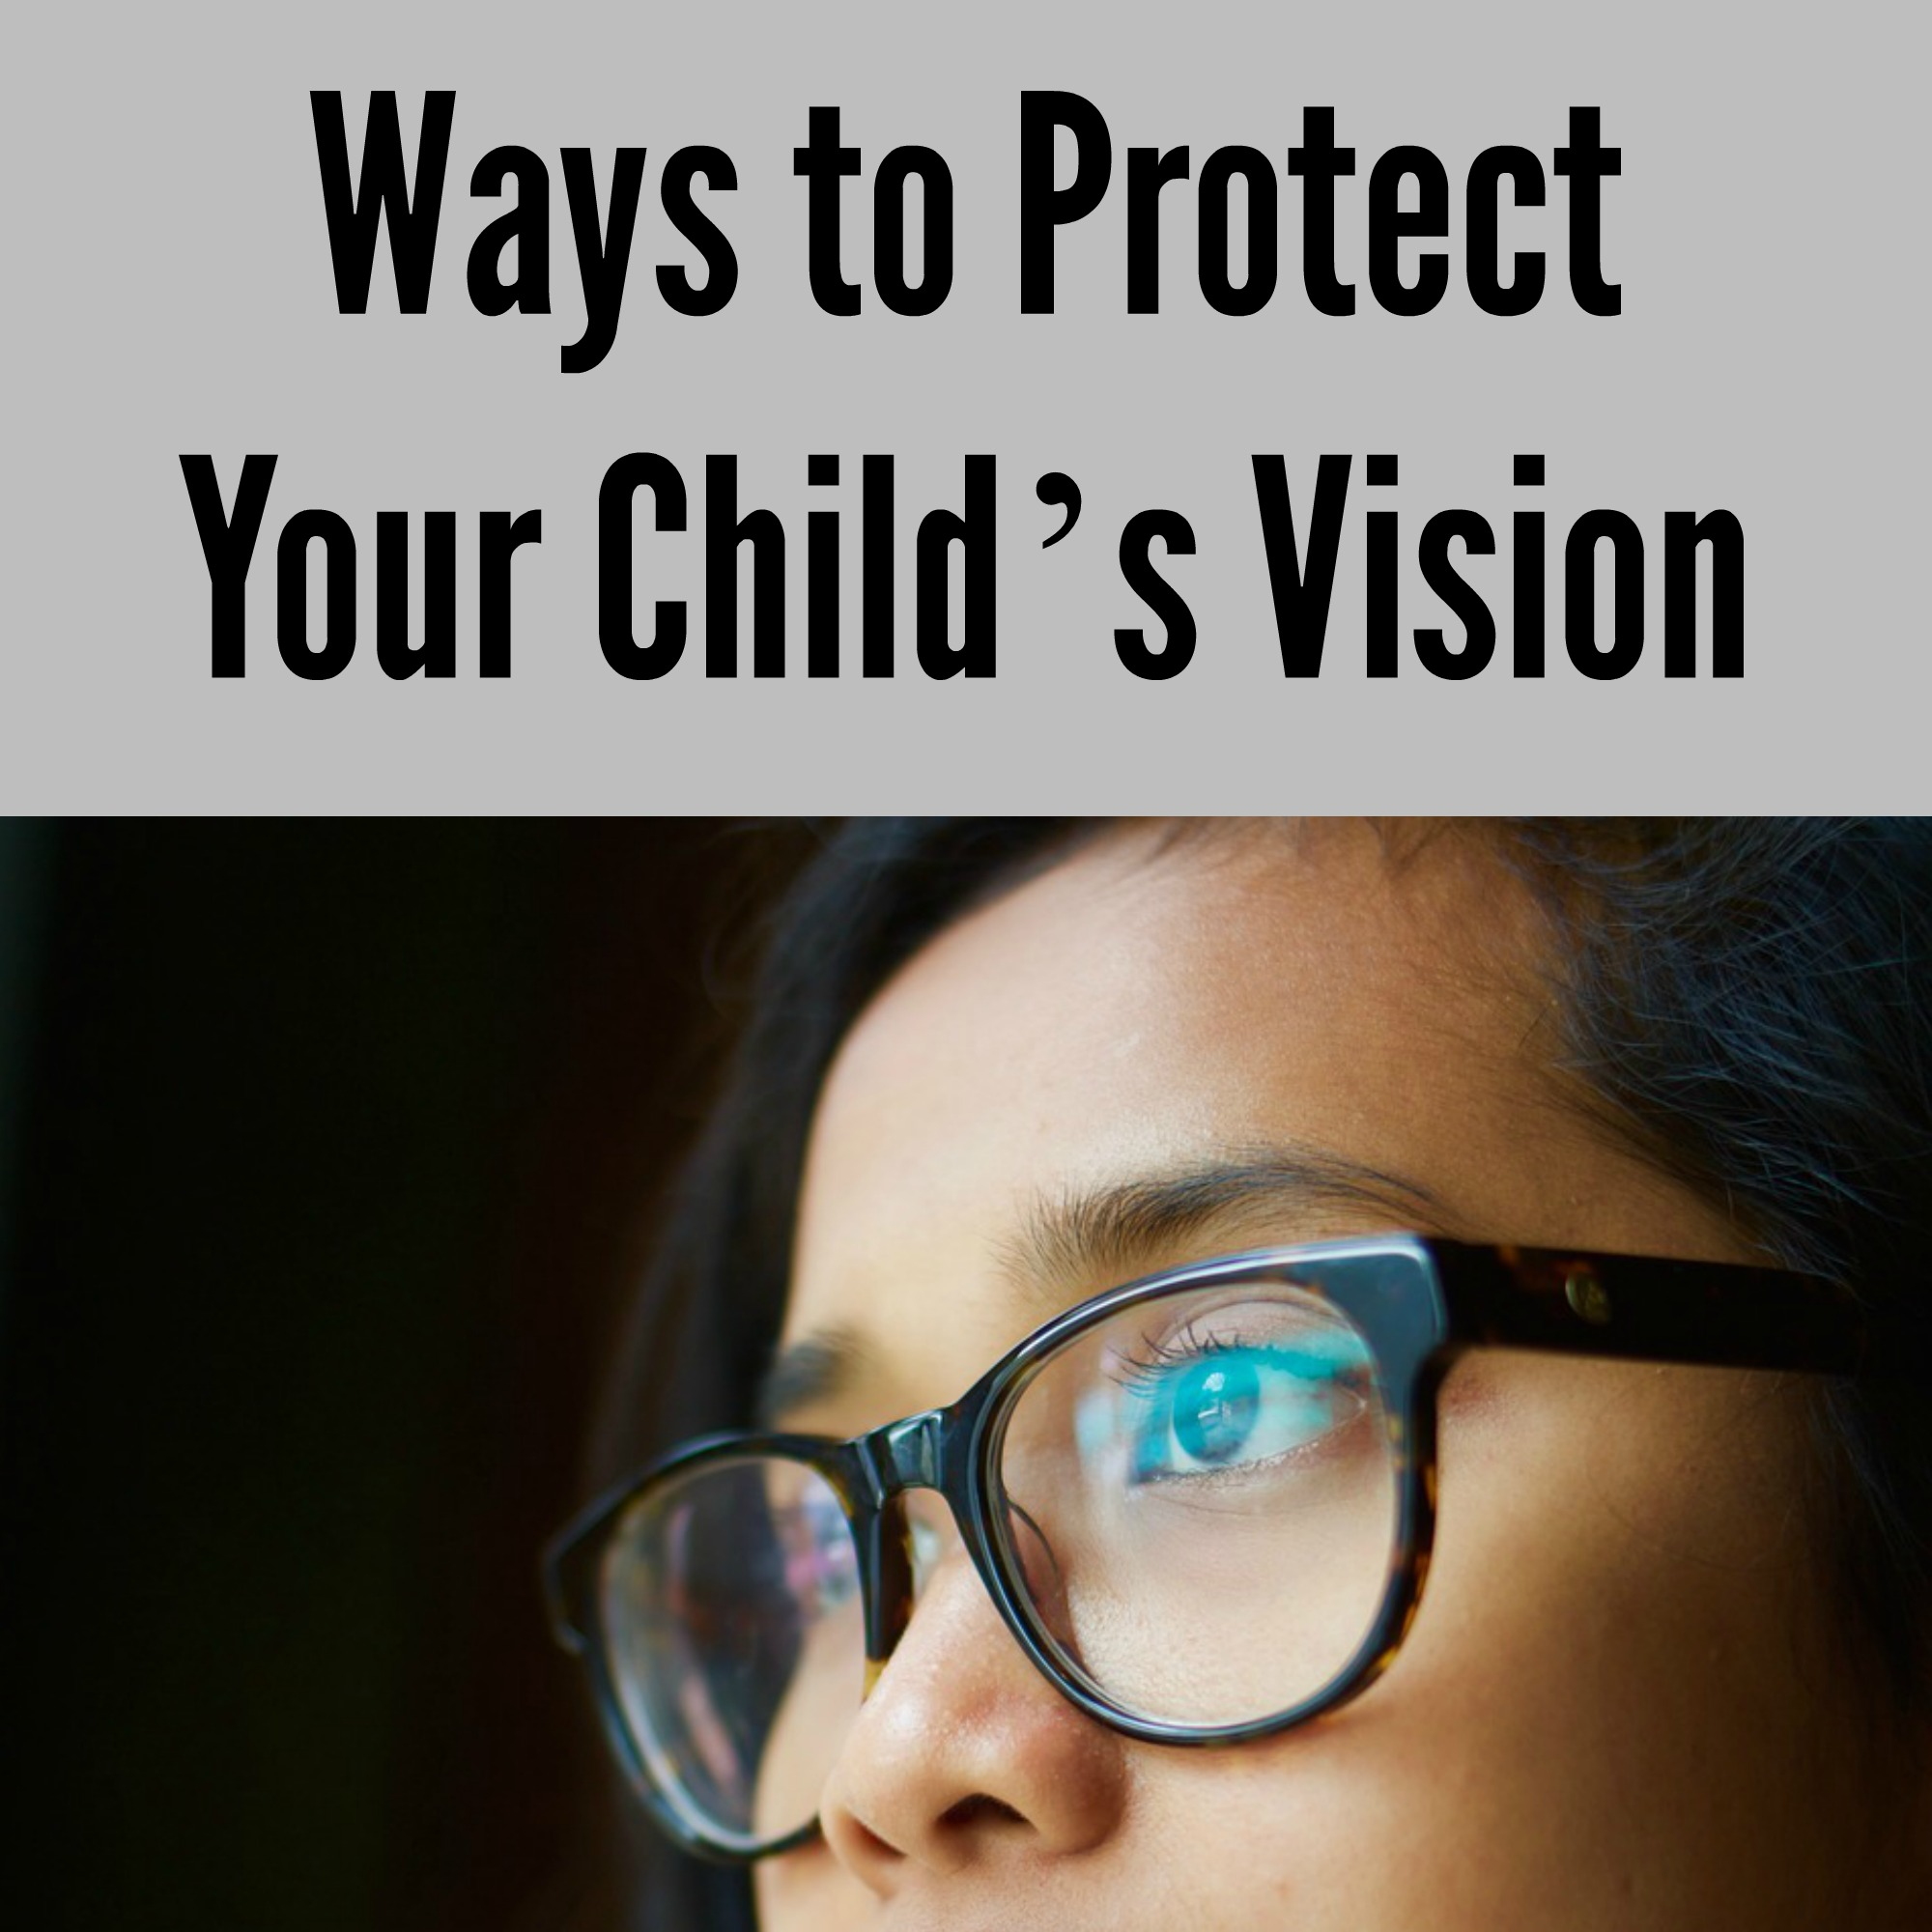 Ways to Protect Your Child's Vision